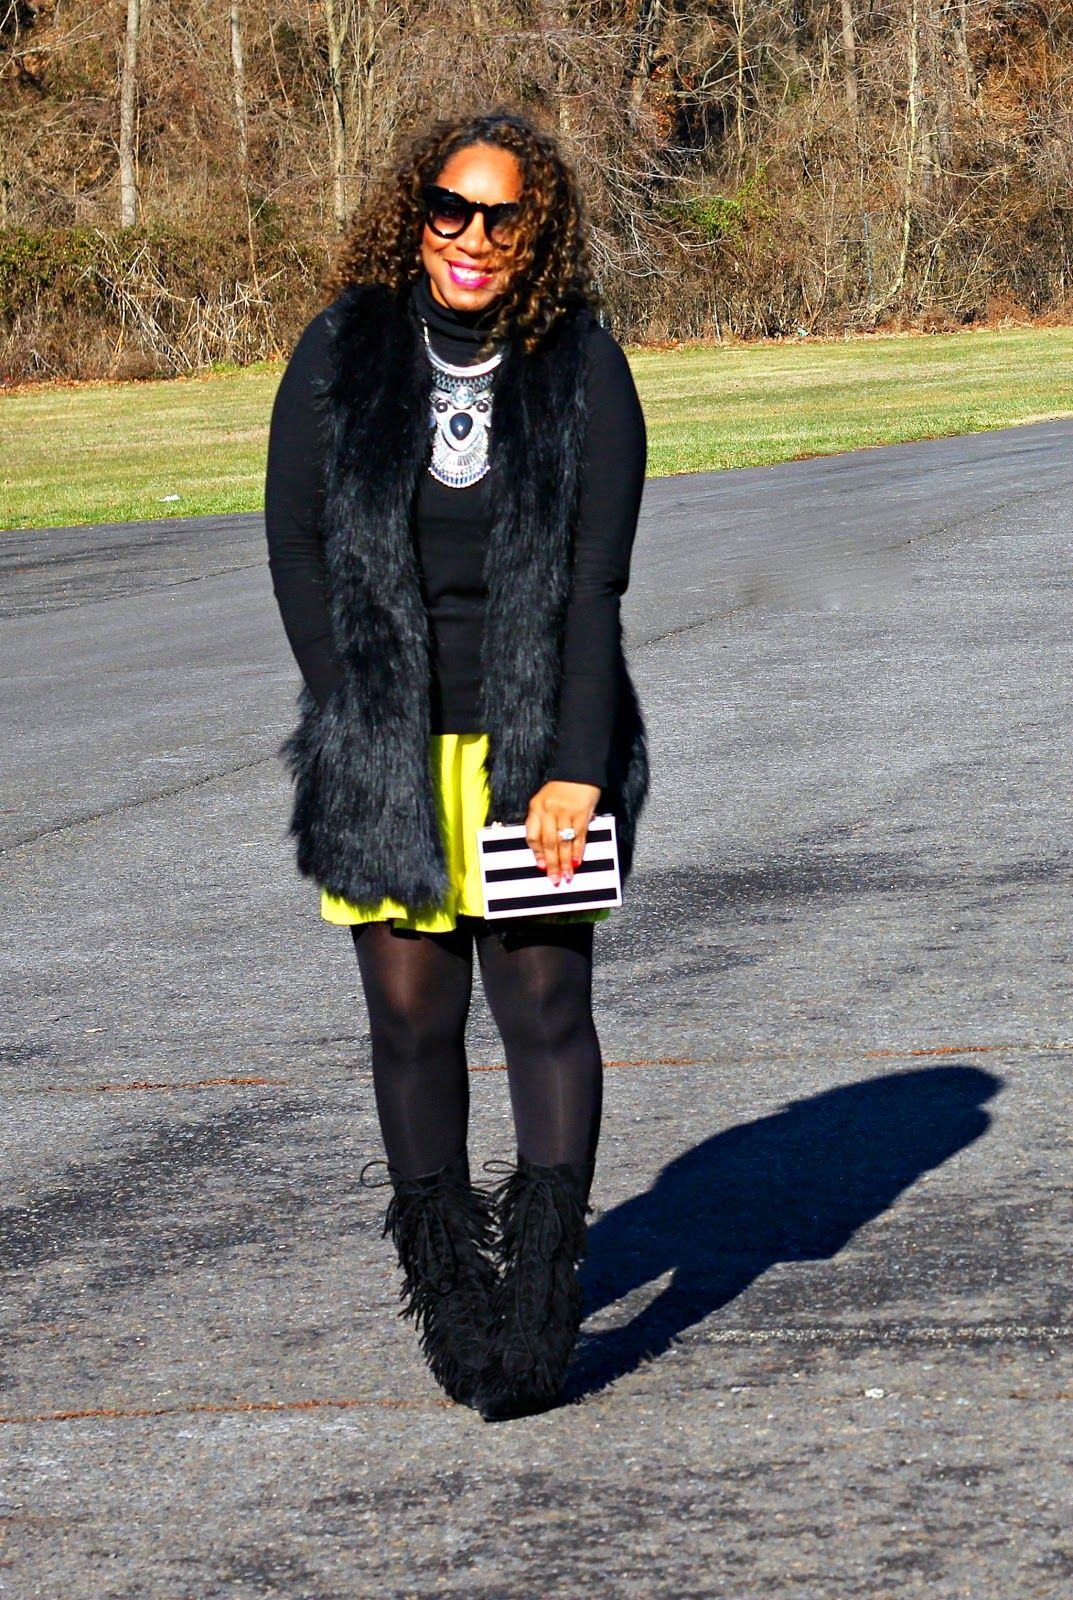 Style & Poise: Neon and Fringes